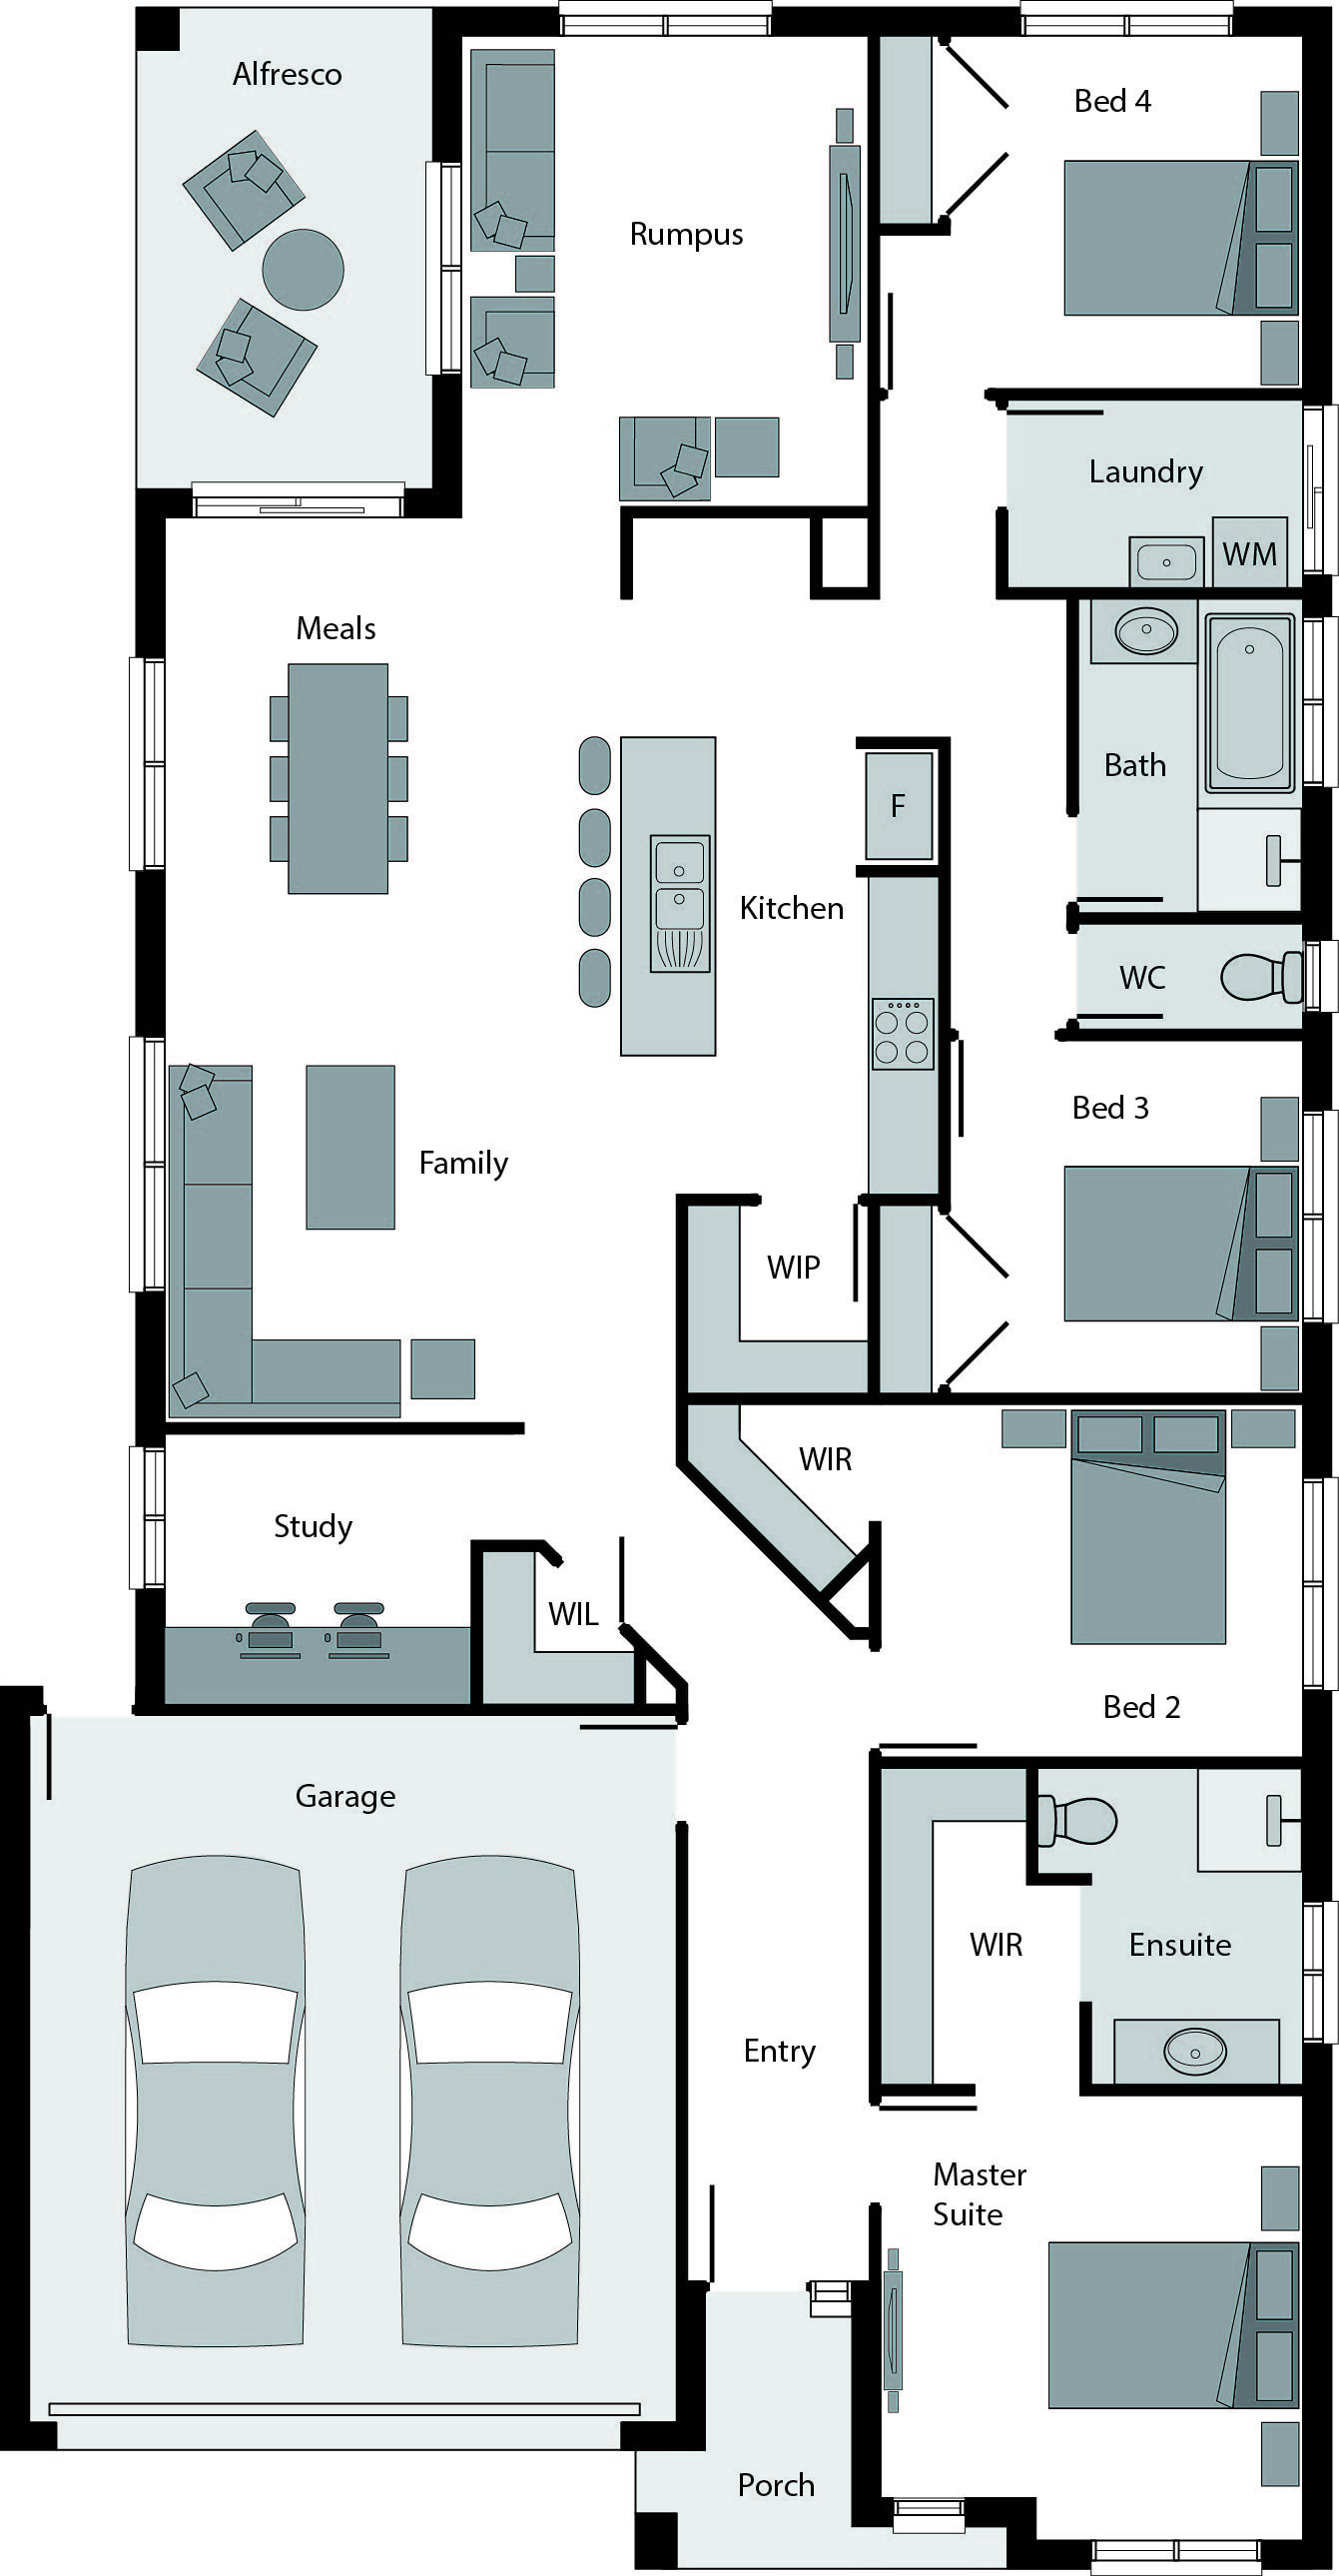 Rumpus Room Designs: Price From: $ 182,900 With A Spacious Rumpus Room, Large